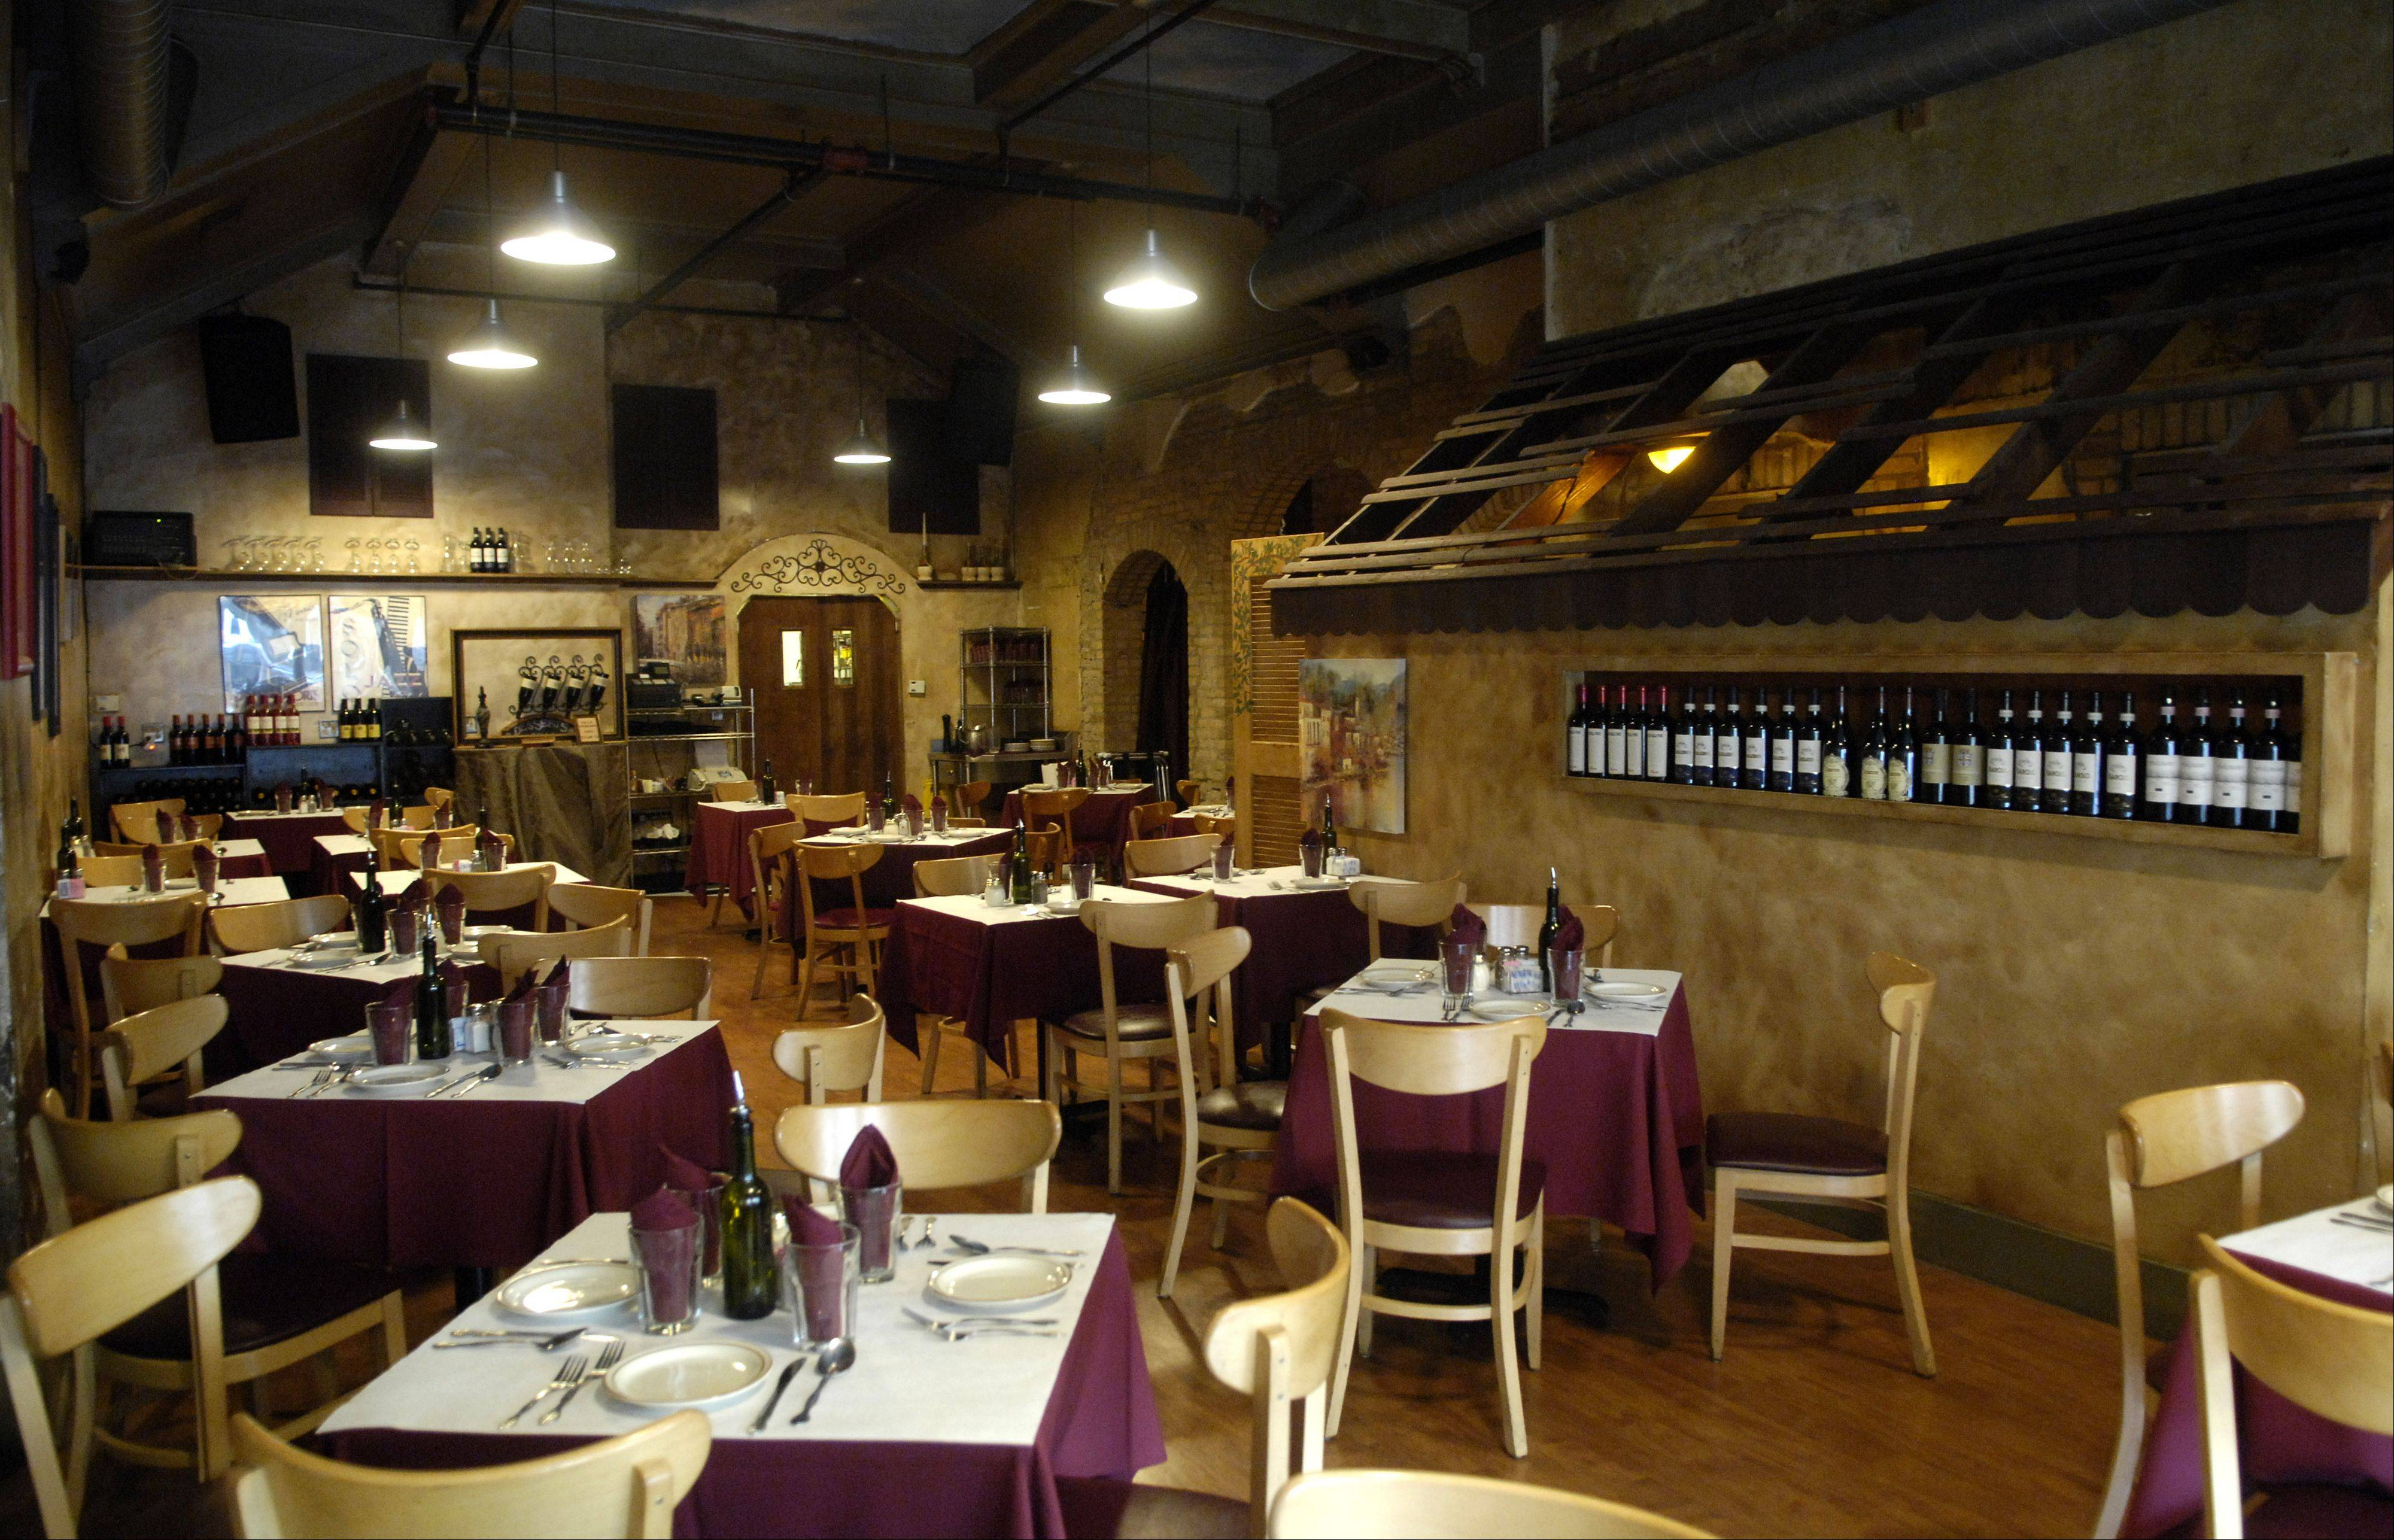 Villa Verone brings Old World Italian charm to Elgin.